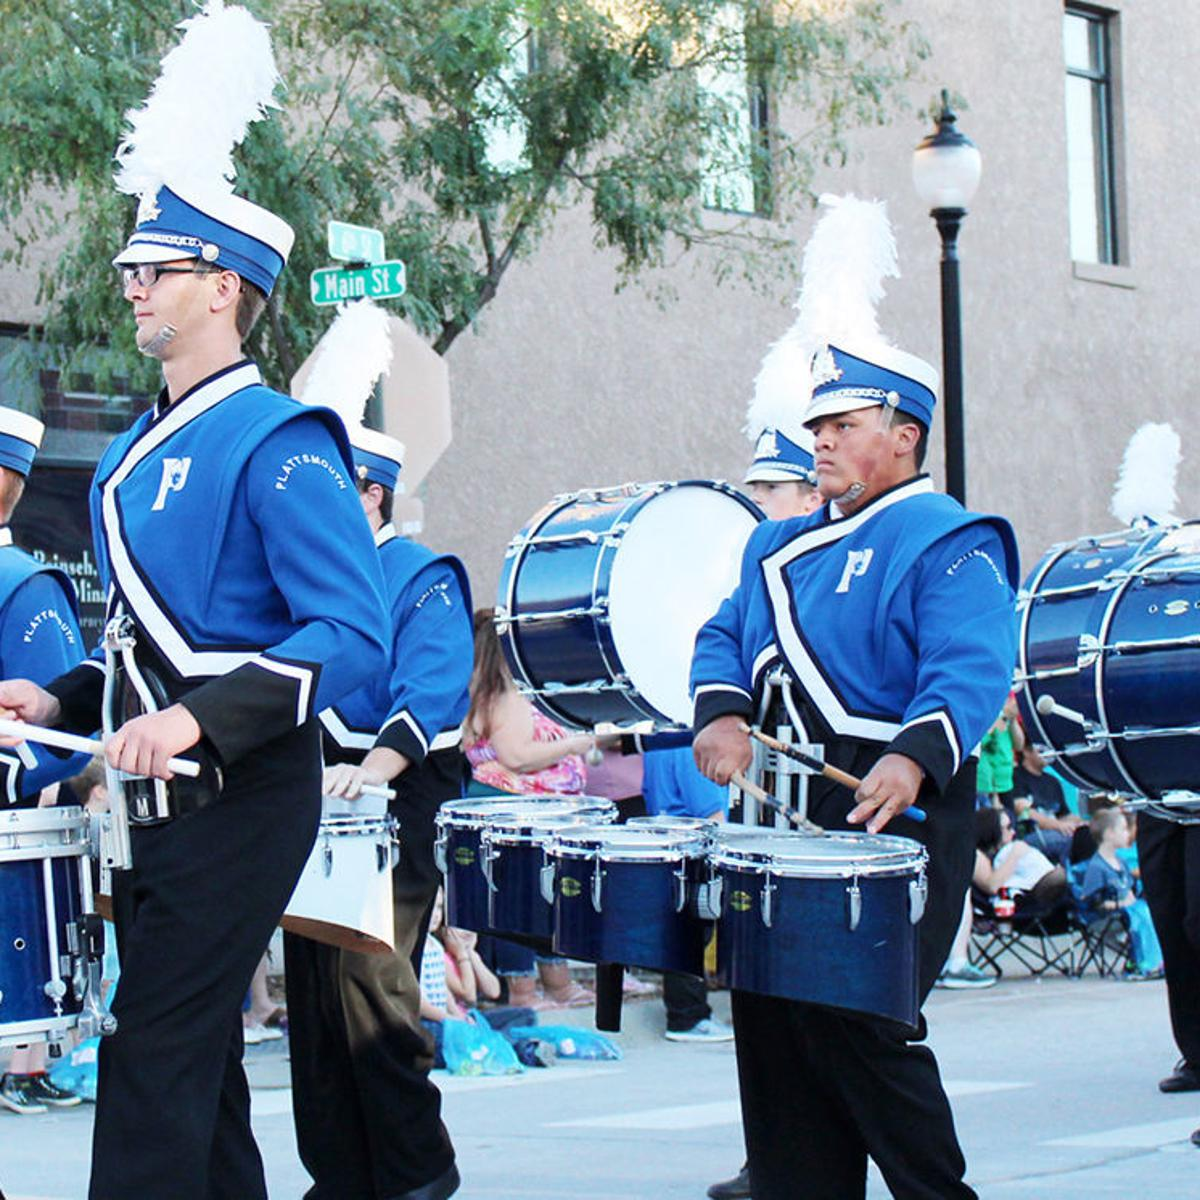 Plattsmouth earns top rating in state marching band contest